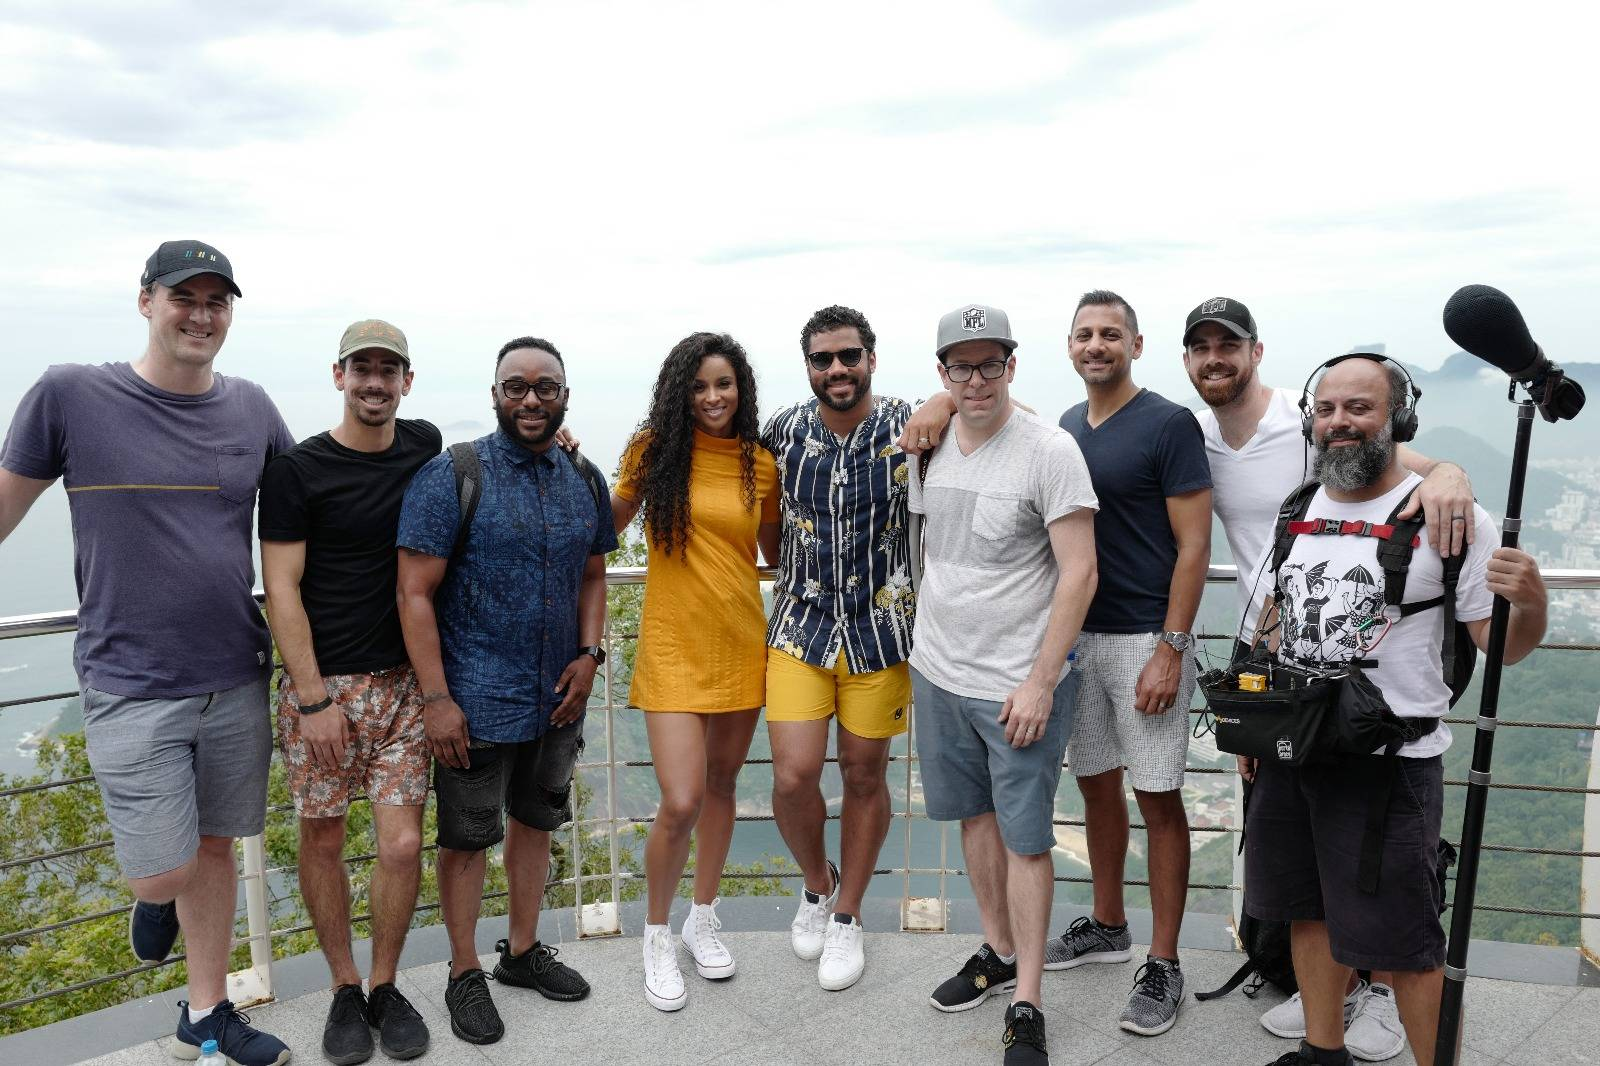 Alex and the NFL Team on their most recent trip to film Russell Wilson and Ciara in Rio de Janeiro, Brazil.